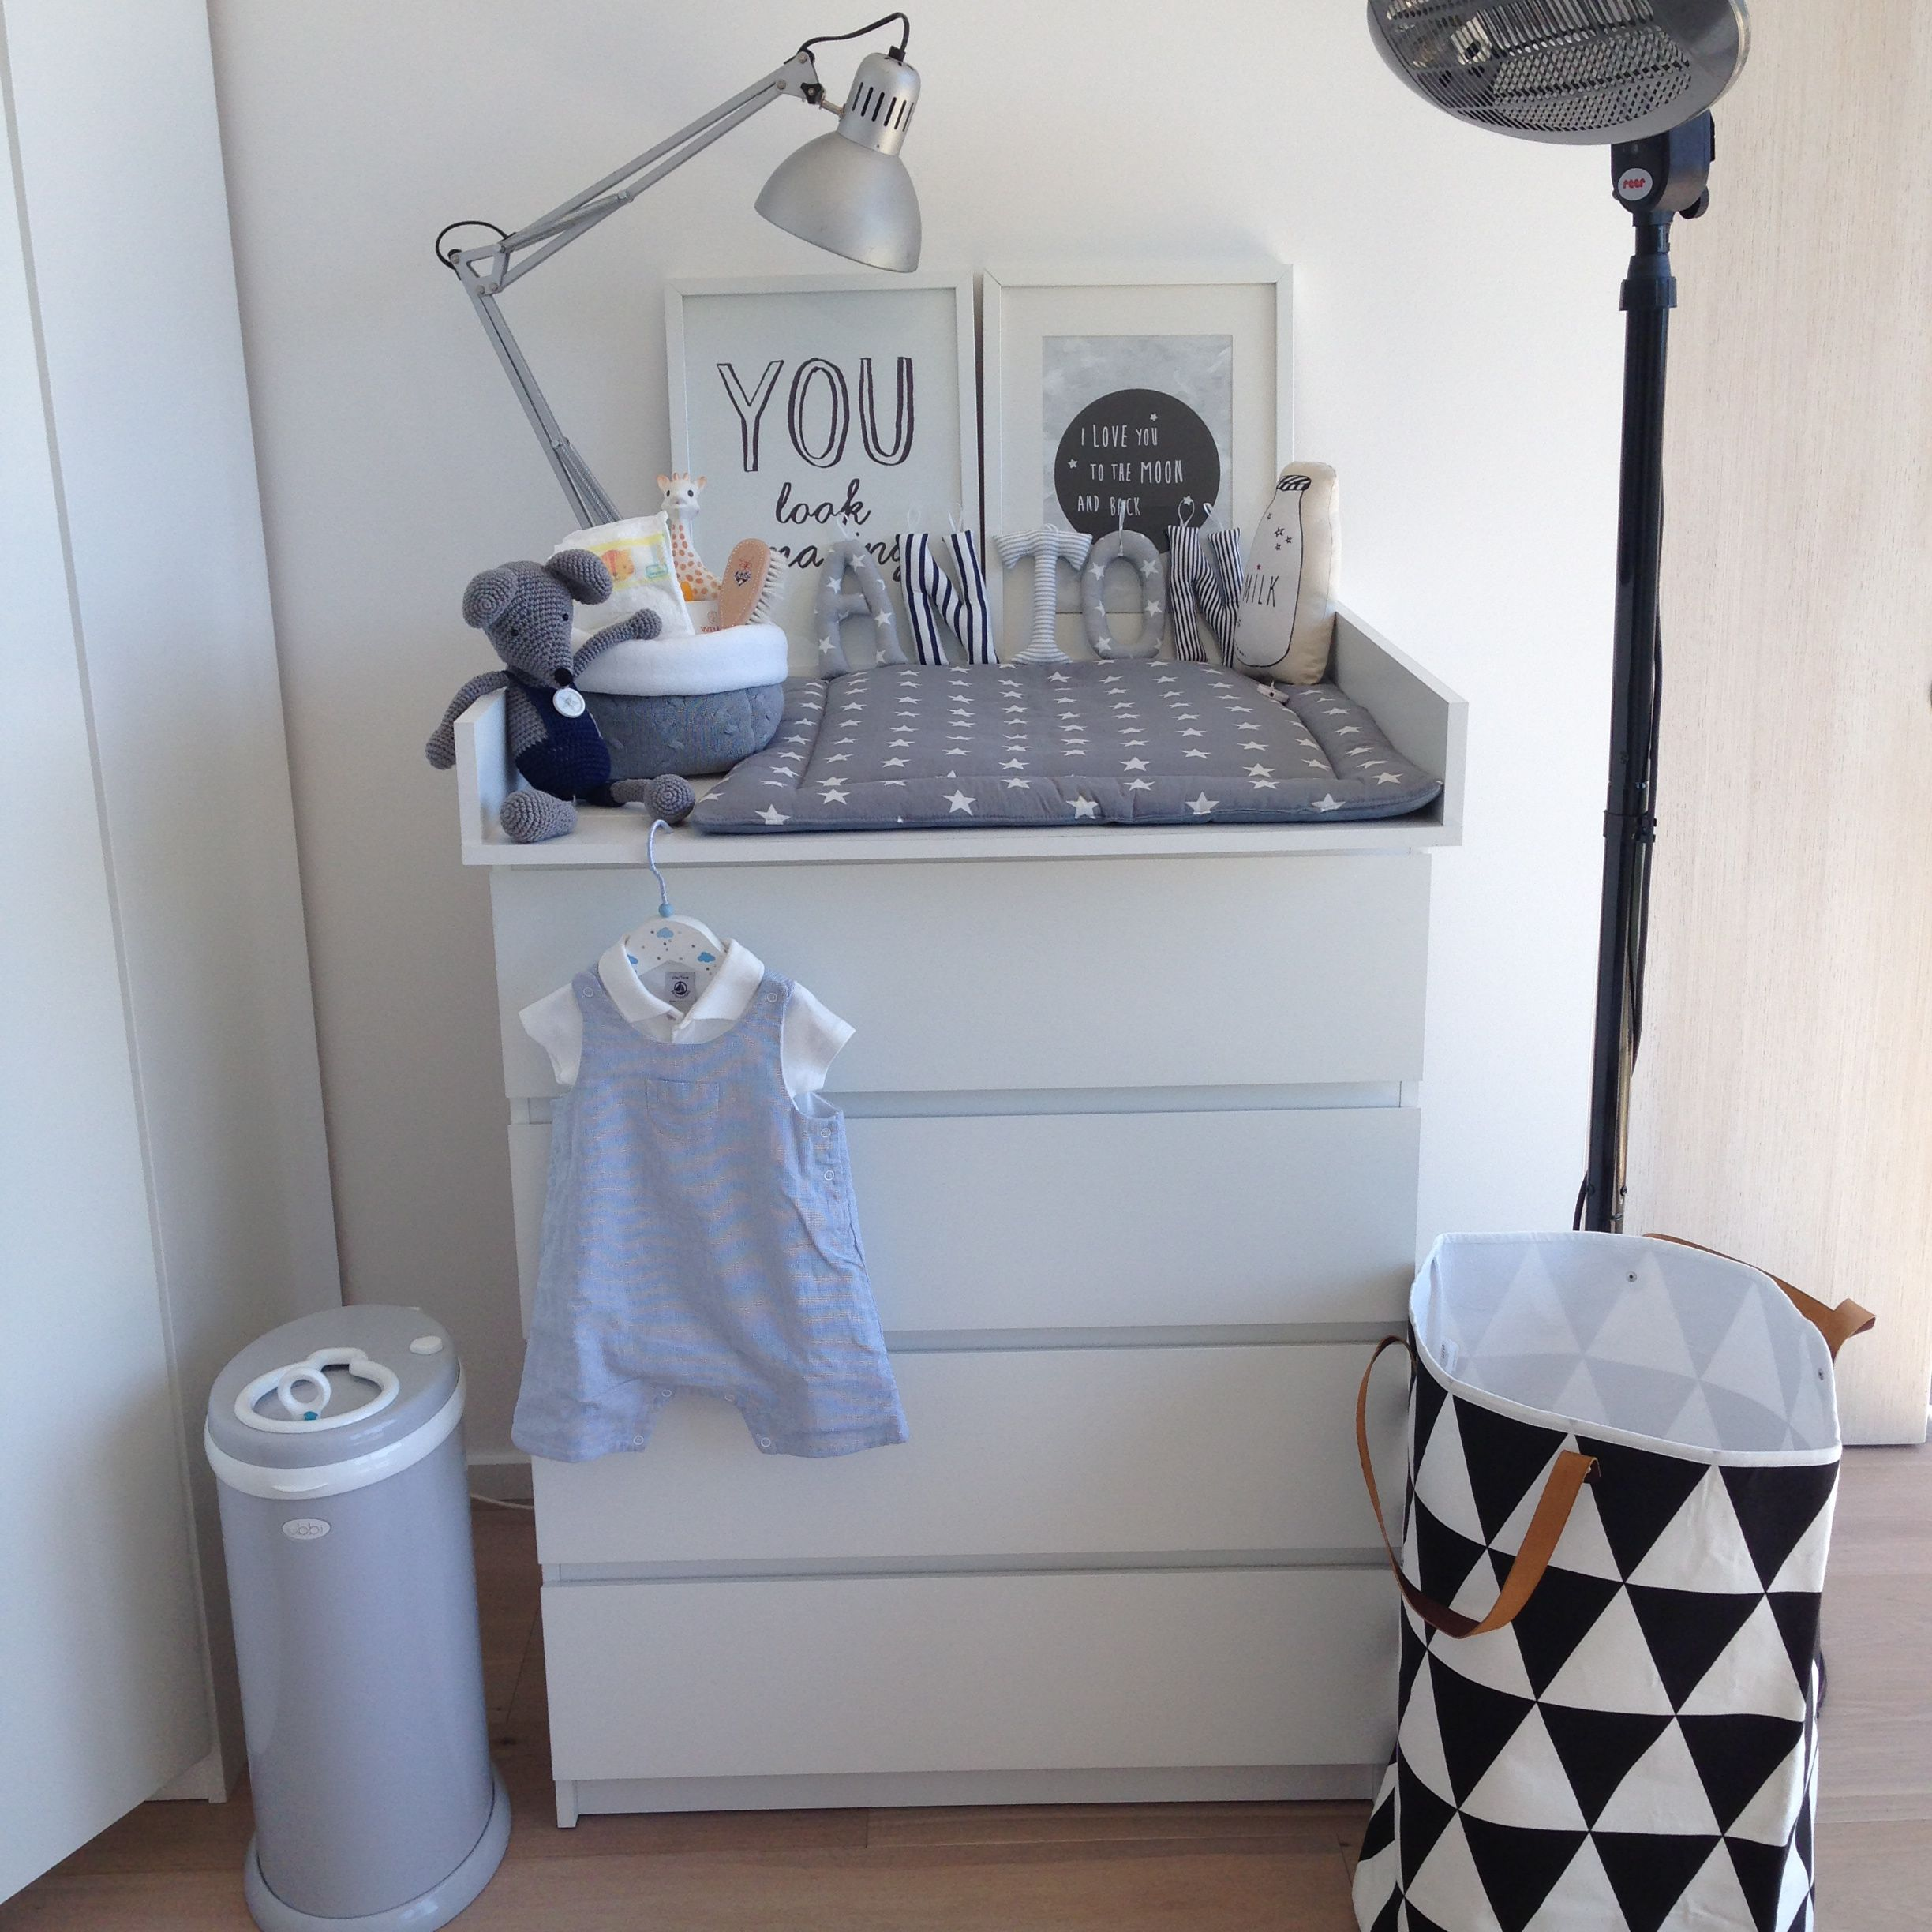 ikea malm ca 69 anton zeigt uns sein kinderzimmer. Black Bedroom Furniture Sets. Home Design Ideas